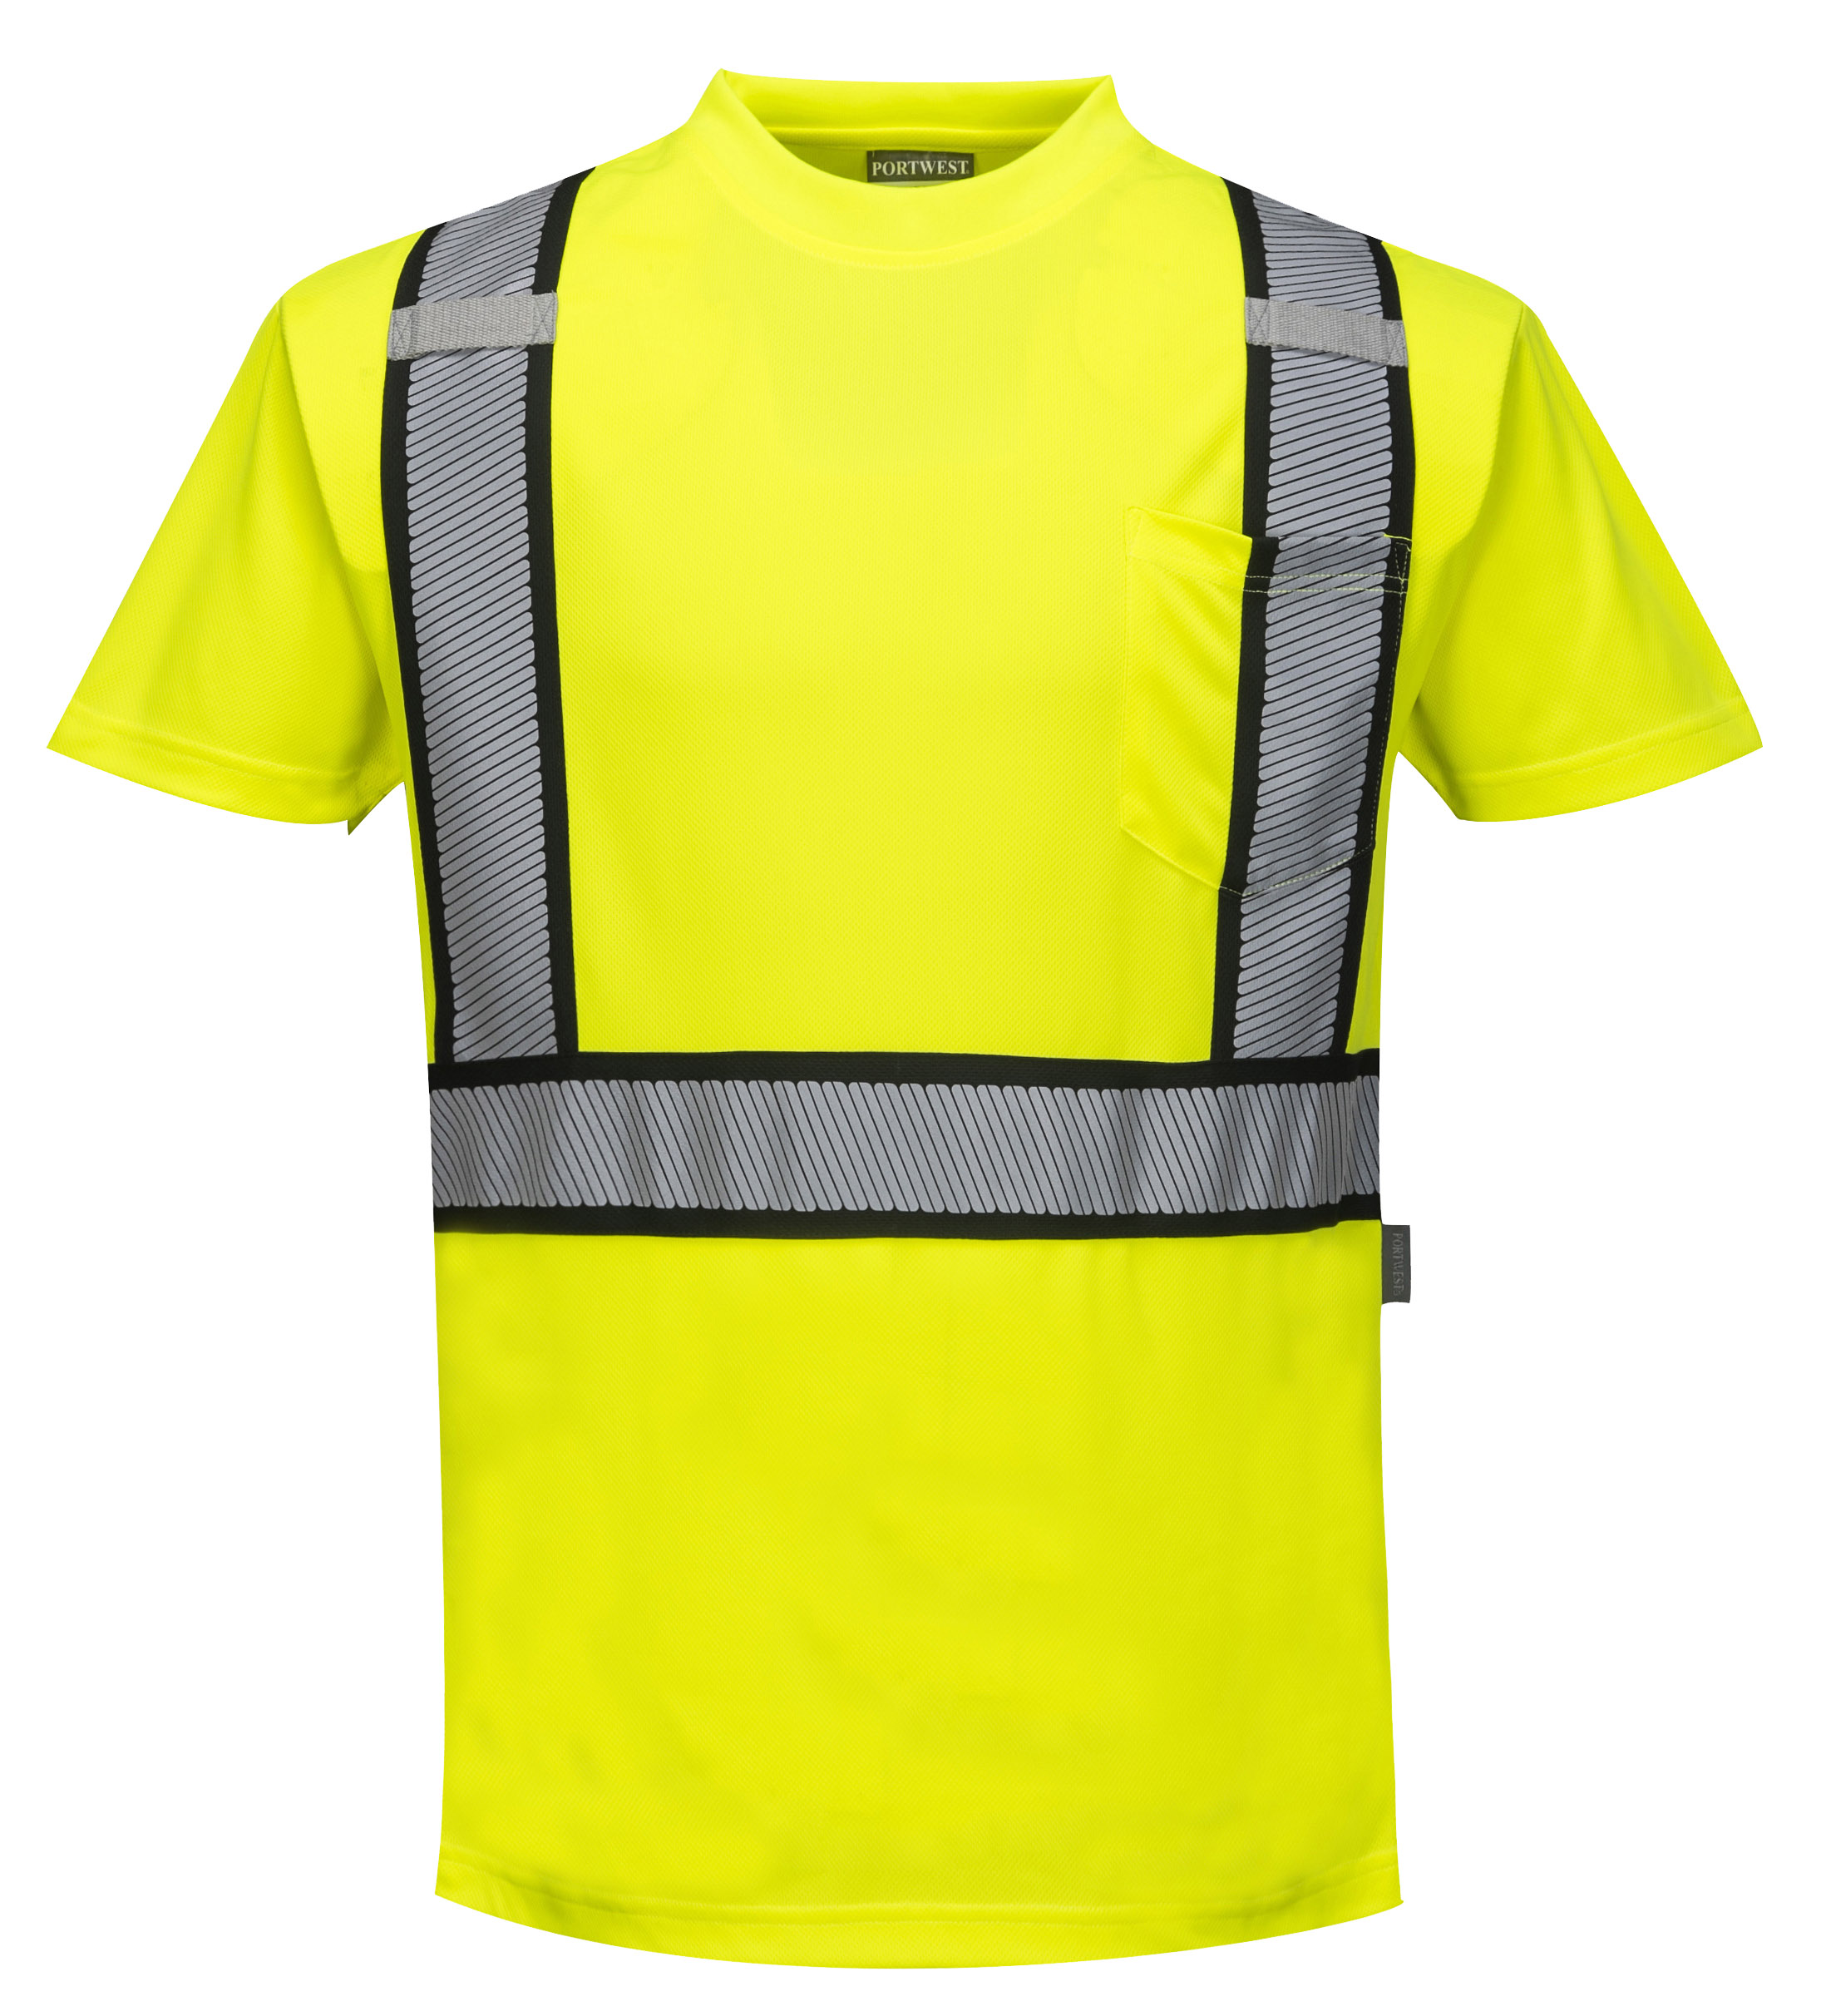 be87d4072a9 Detroit High Visibility T-shirt - Portwest S395 — iWantWorkwear